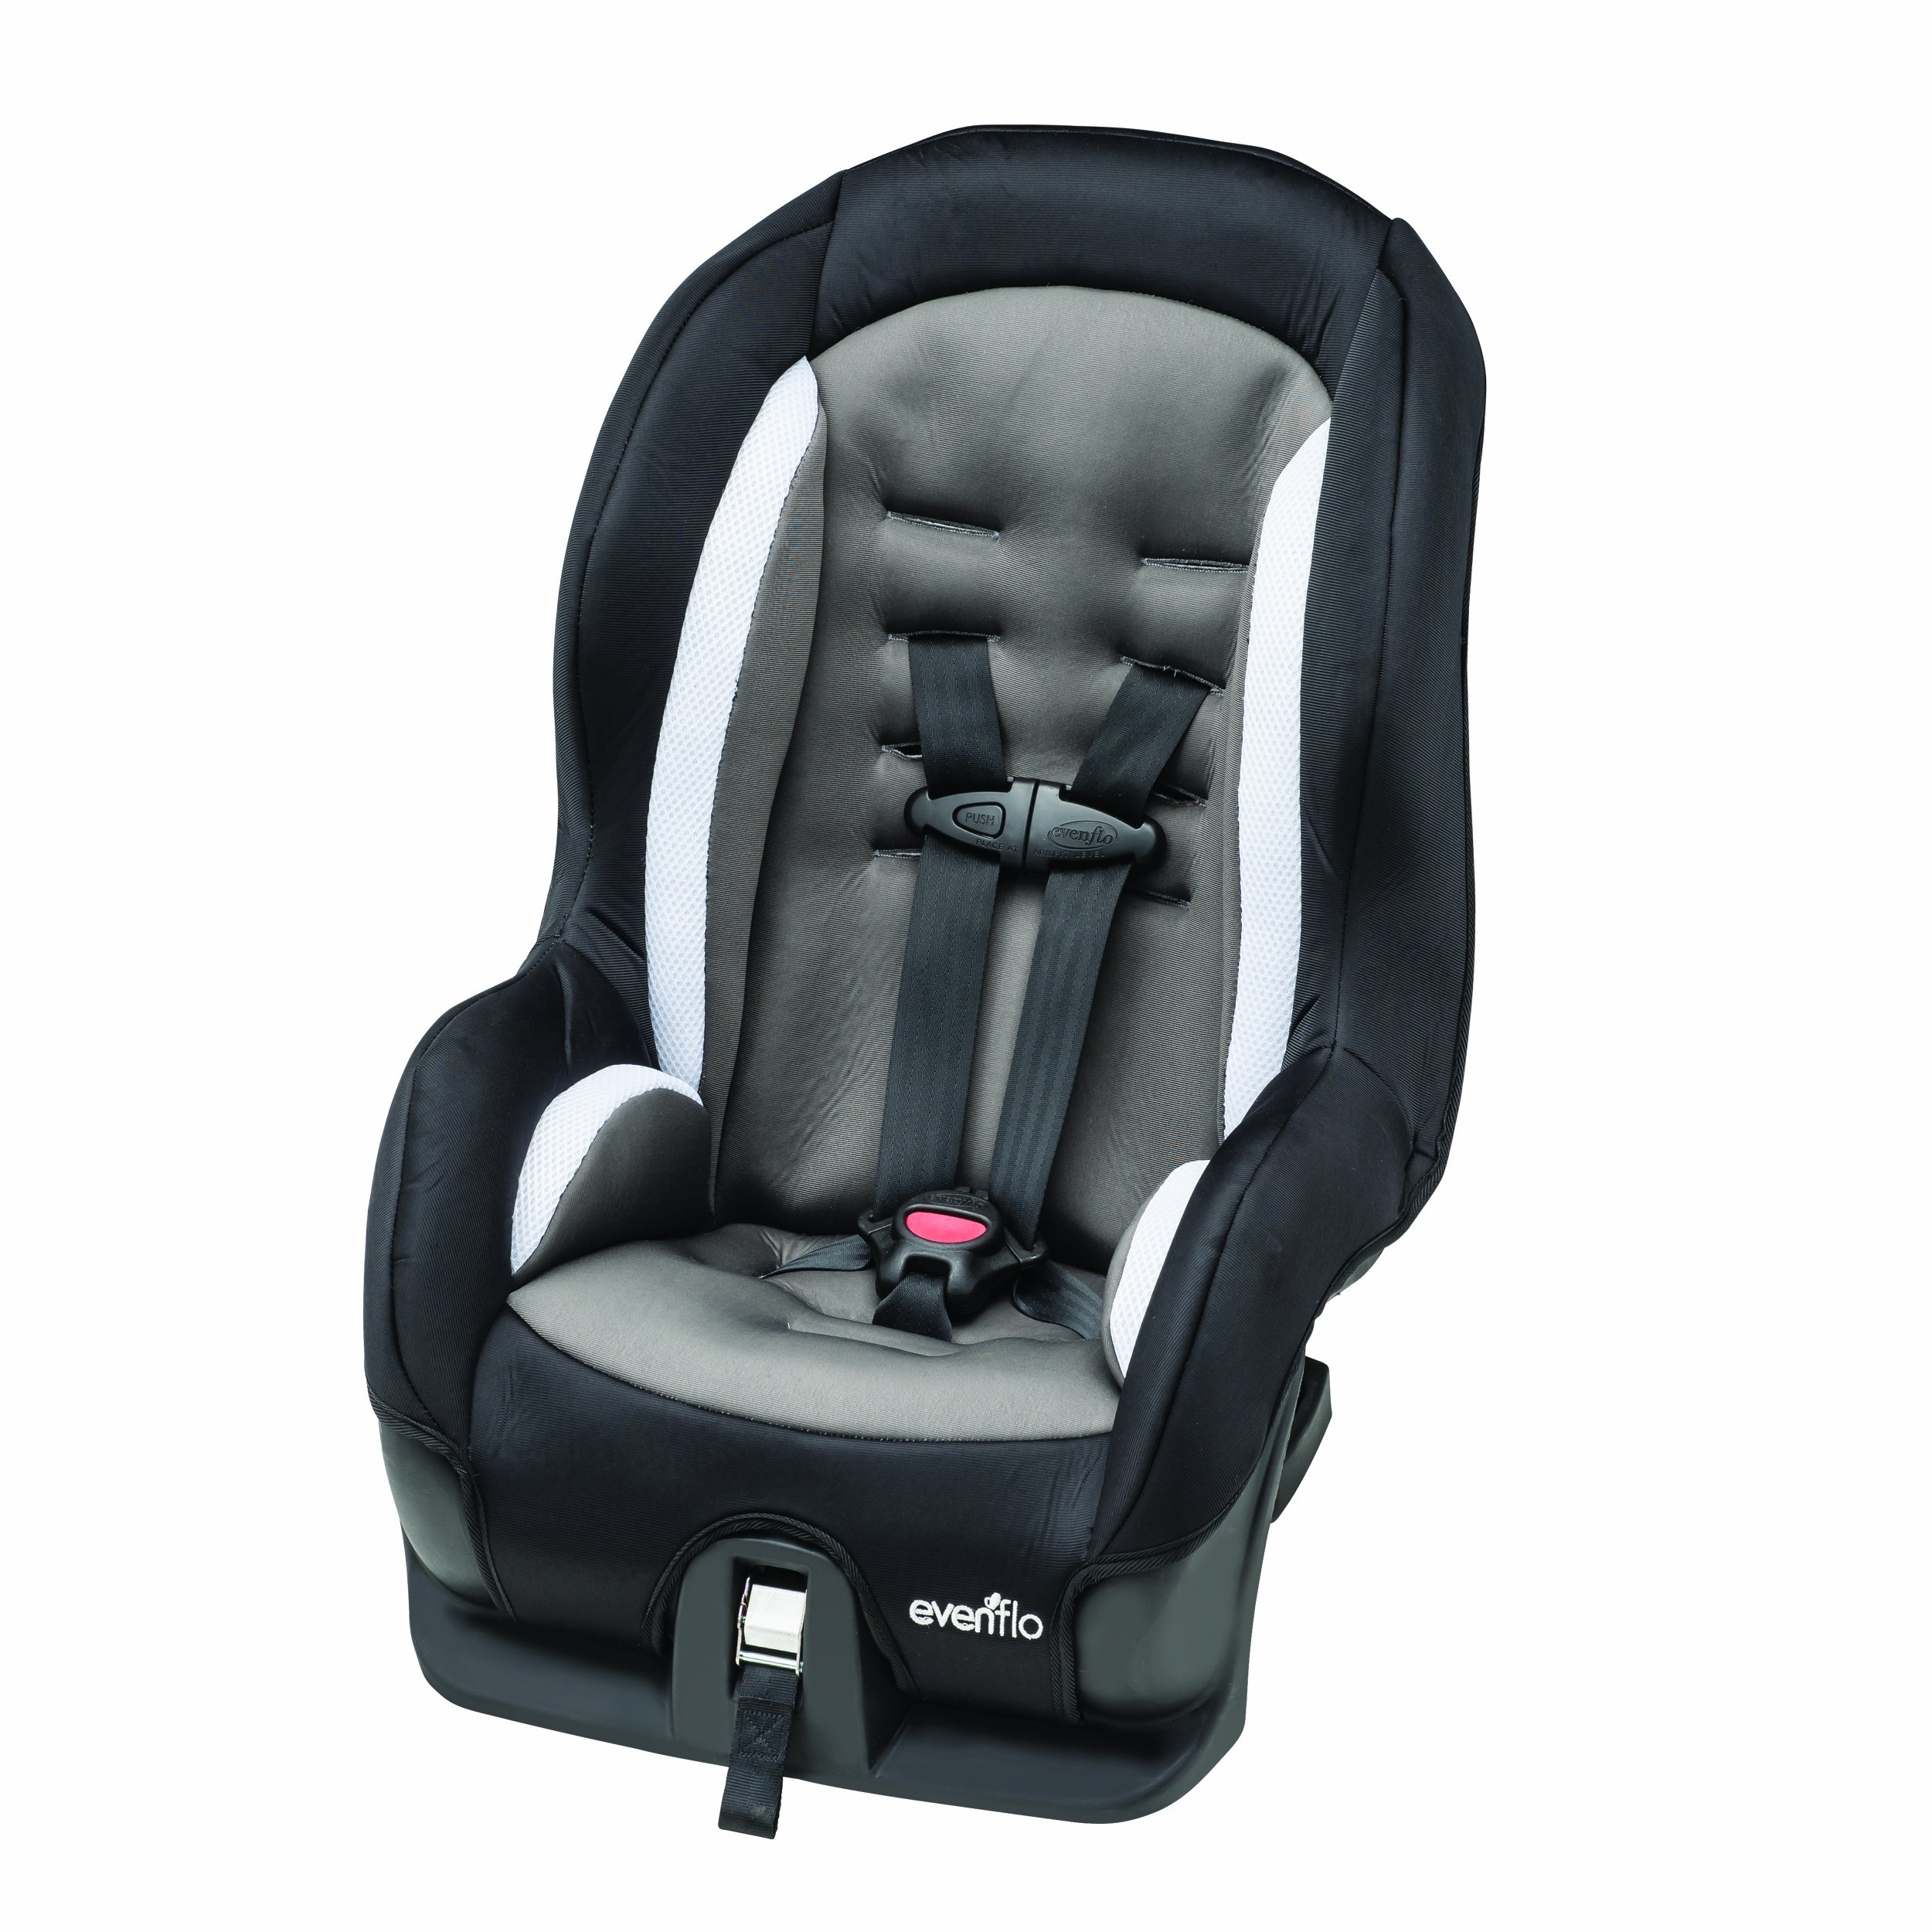 Amazon.com : Evenflo Tribute Sport Convertible Car Seat, Maxwell :  Convertible Child Safety Car Seats : Baby